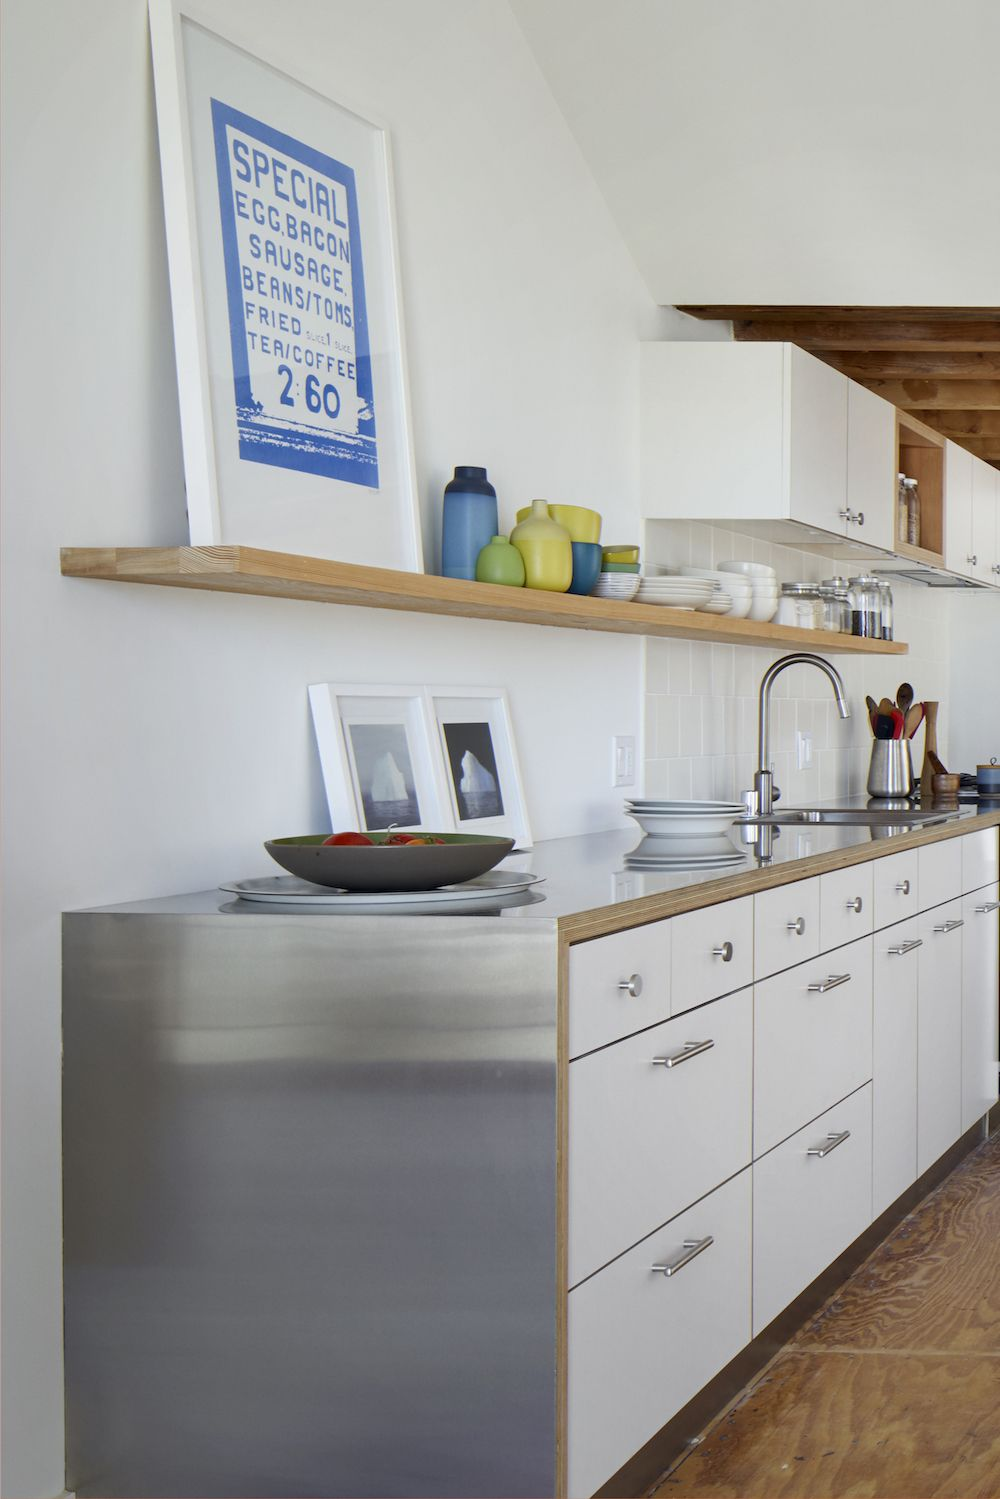 Affordable Kitchen Countertops Island Stools For 10 Favorites Architects Budget Countertop Picks Projects La Architect Oonagh Ryan Puts Her Own Twist On Stainless Our Favorite Is A Sheet Of Brushed Steel With An Exposed